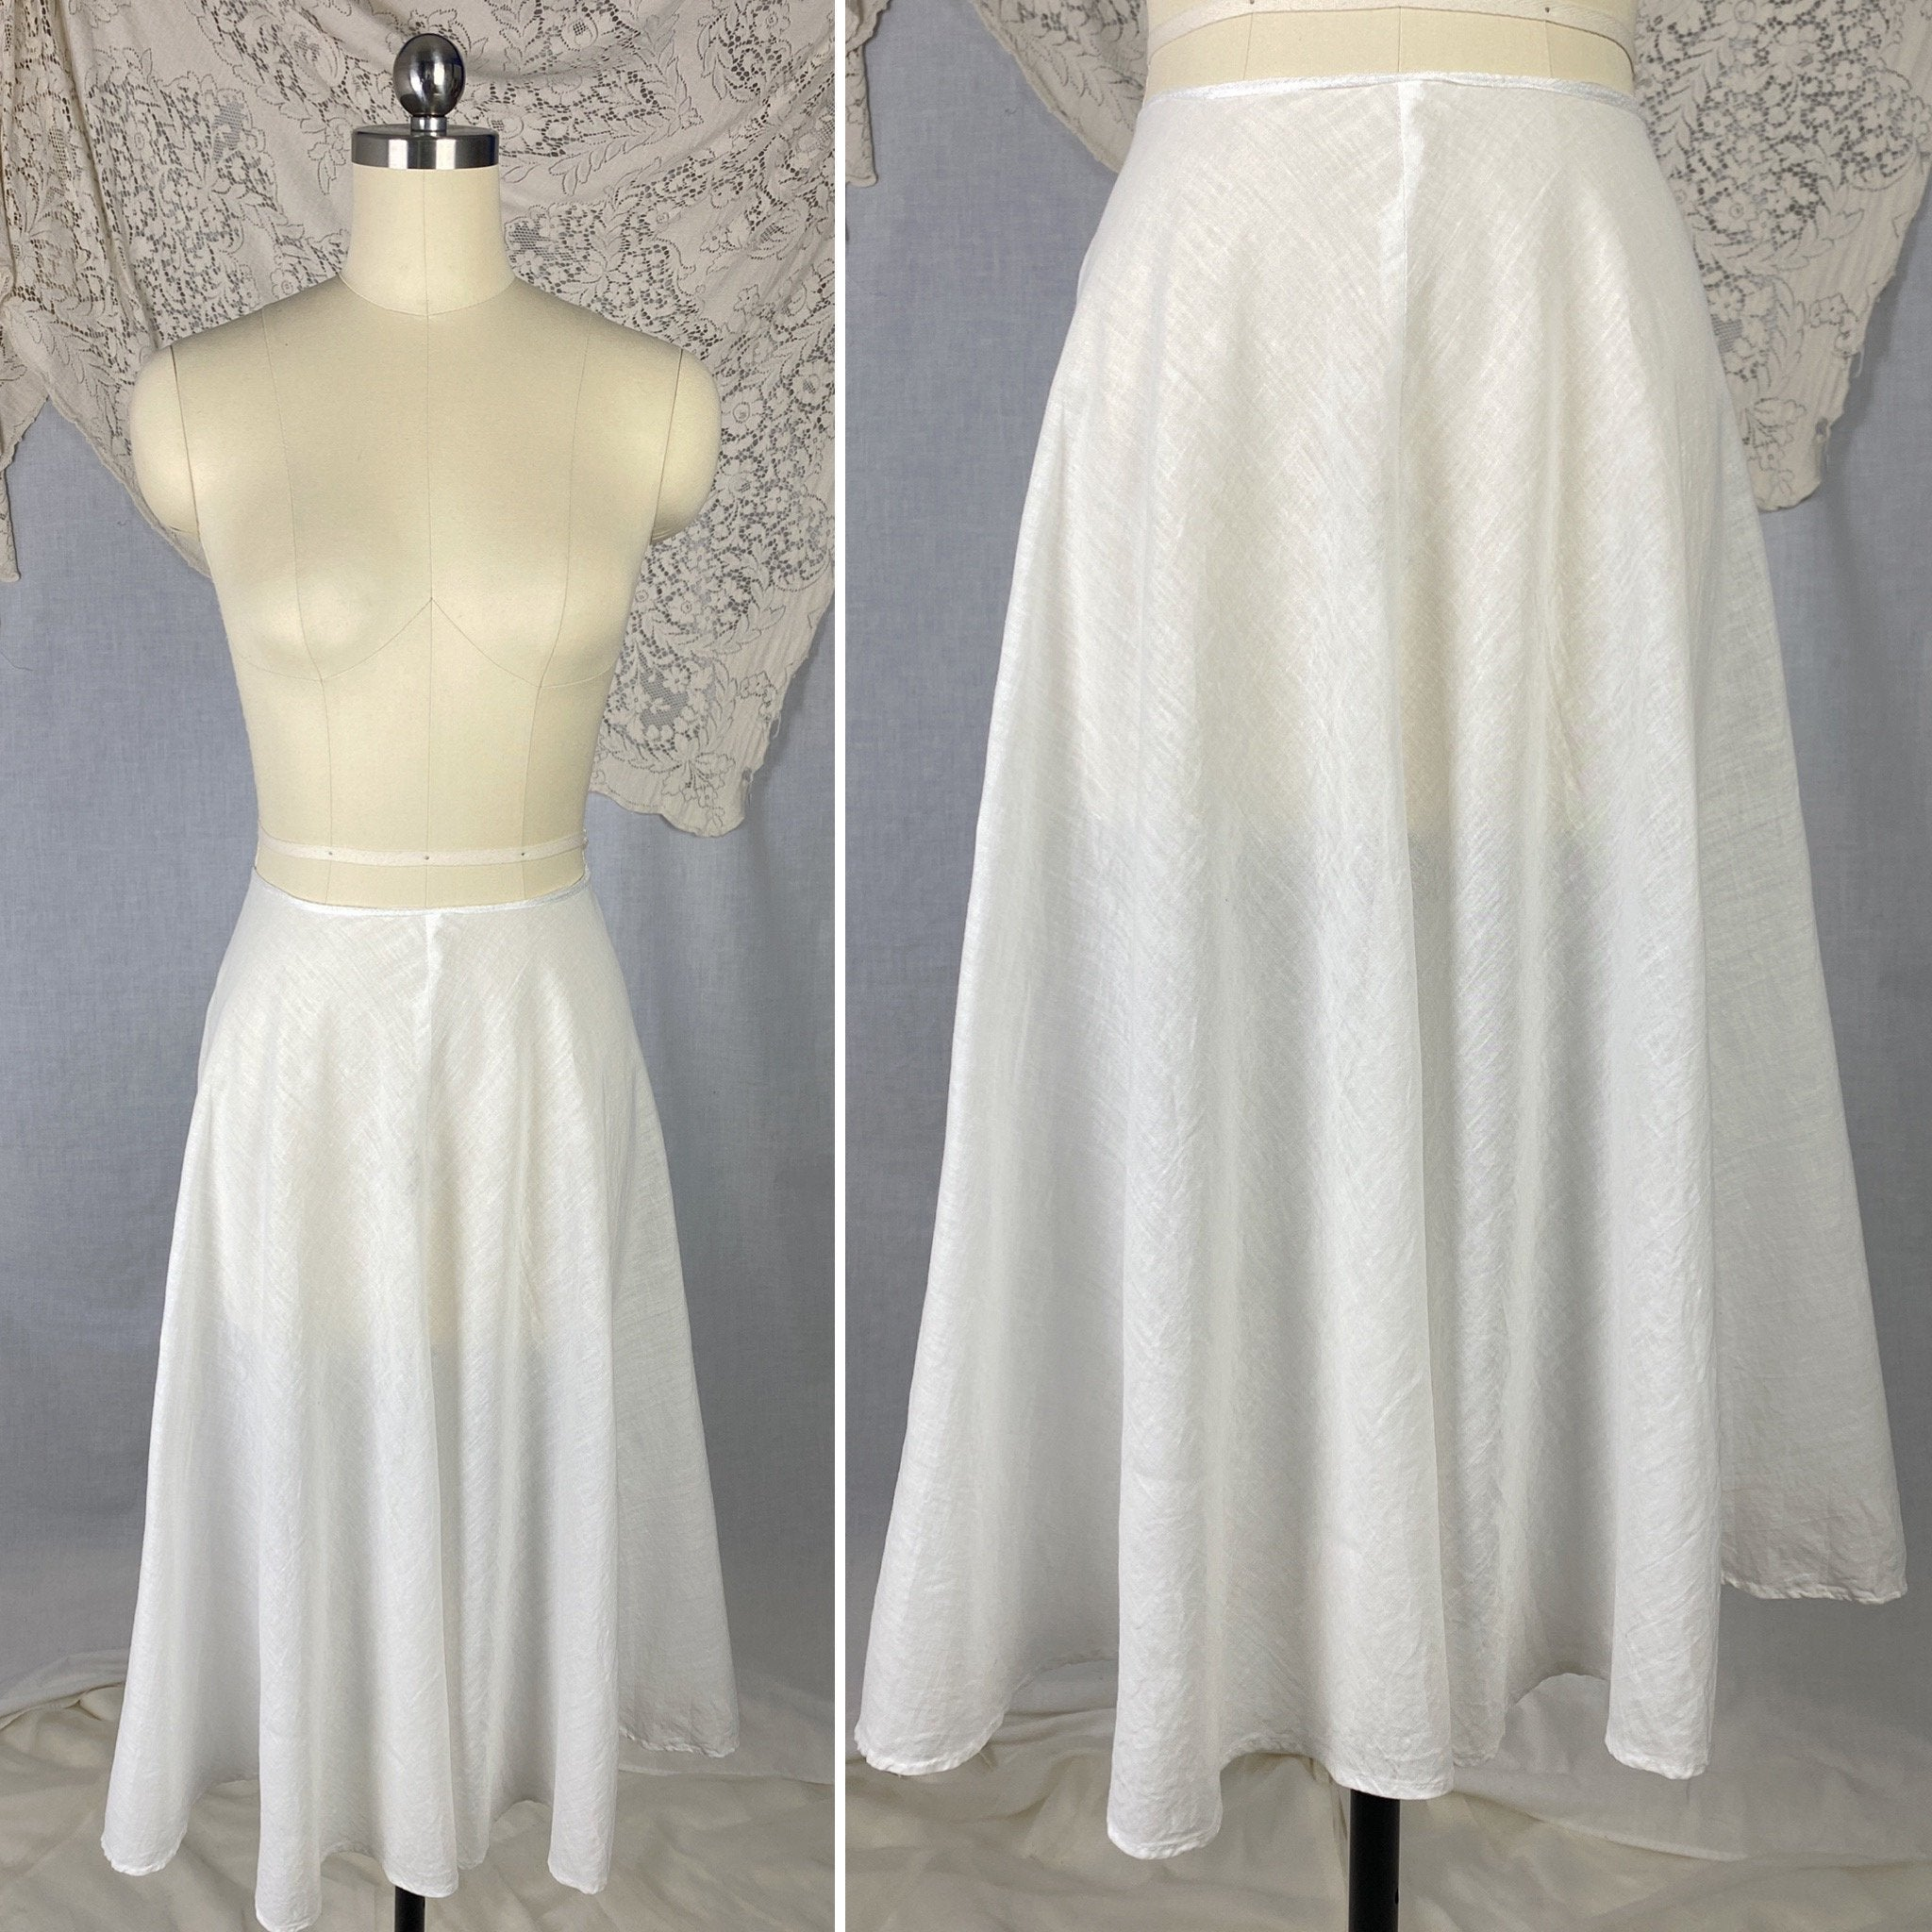 Vintage New Petticoats  White Satin with Lace Petticoats Medium to Large Size